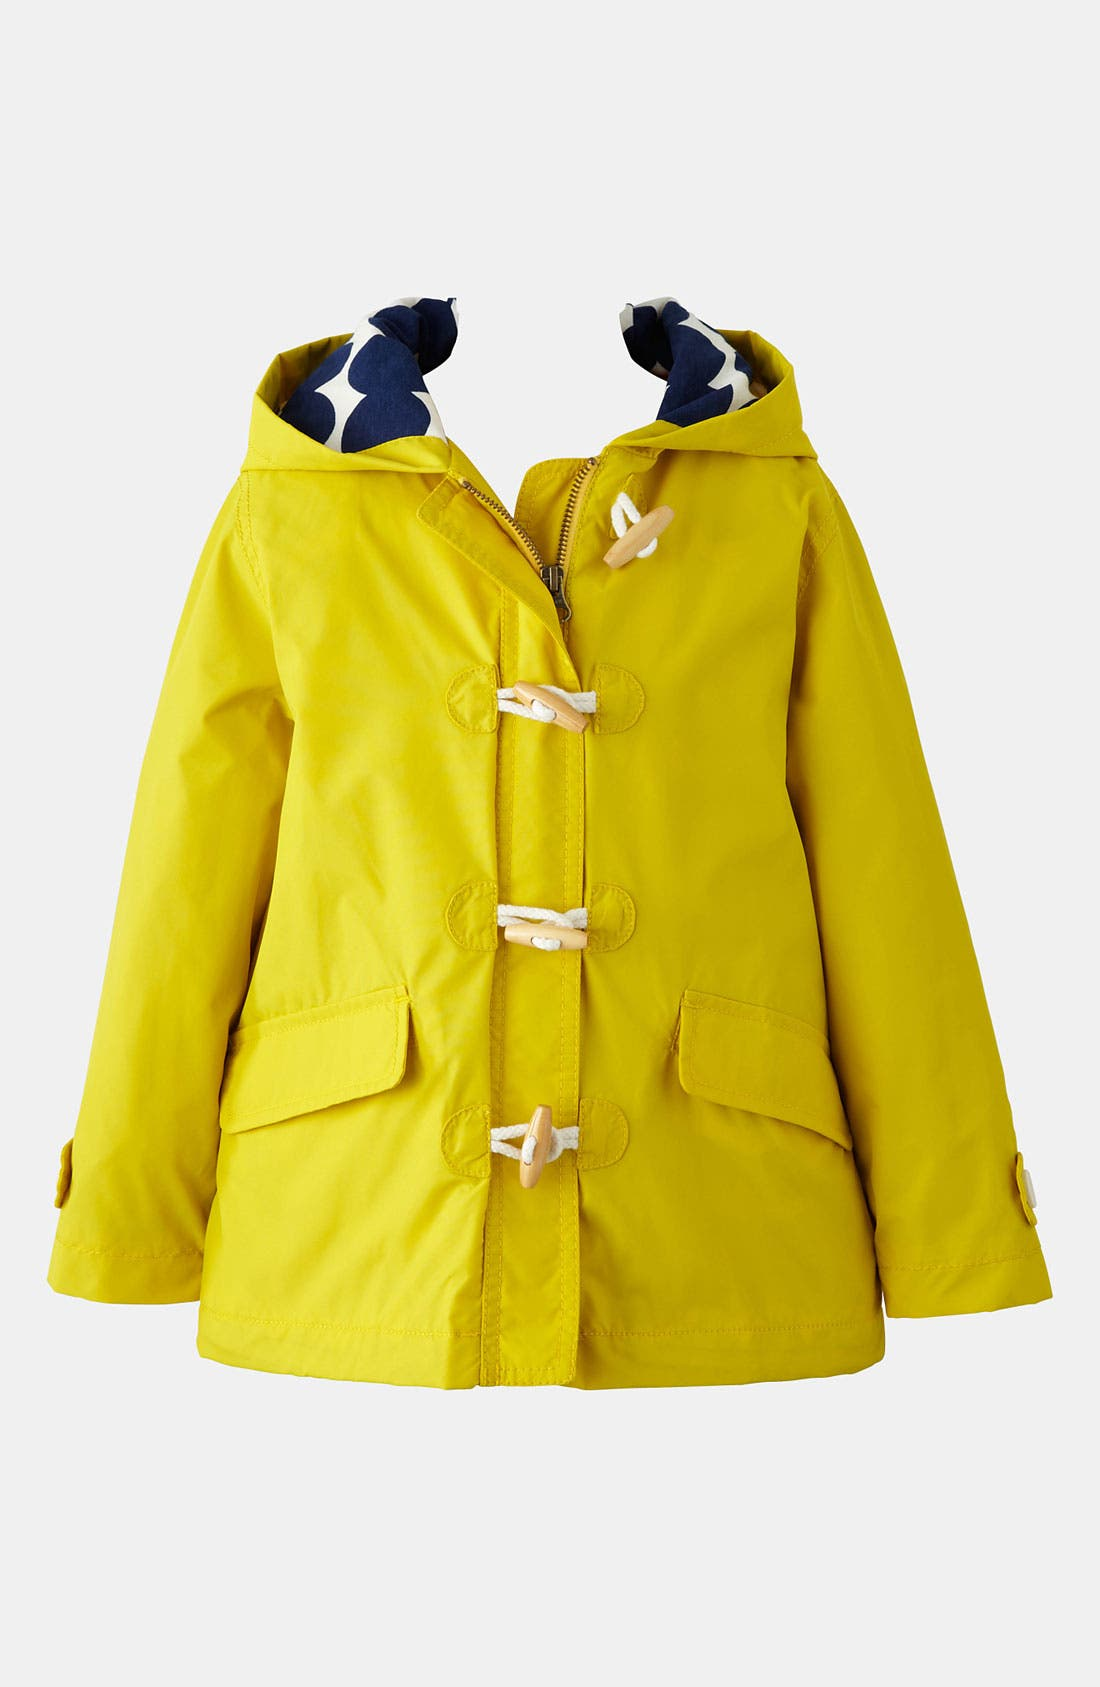 Main Image - Mini Boden 'Fisherman' Rain Jacket (Little Girls & Big Girls)